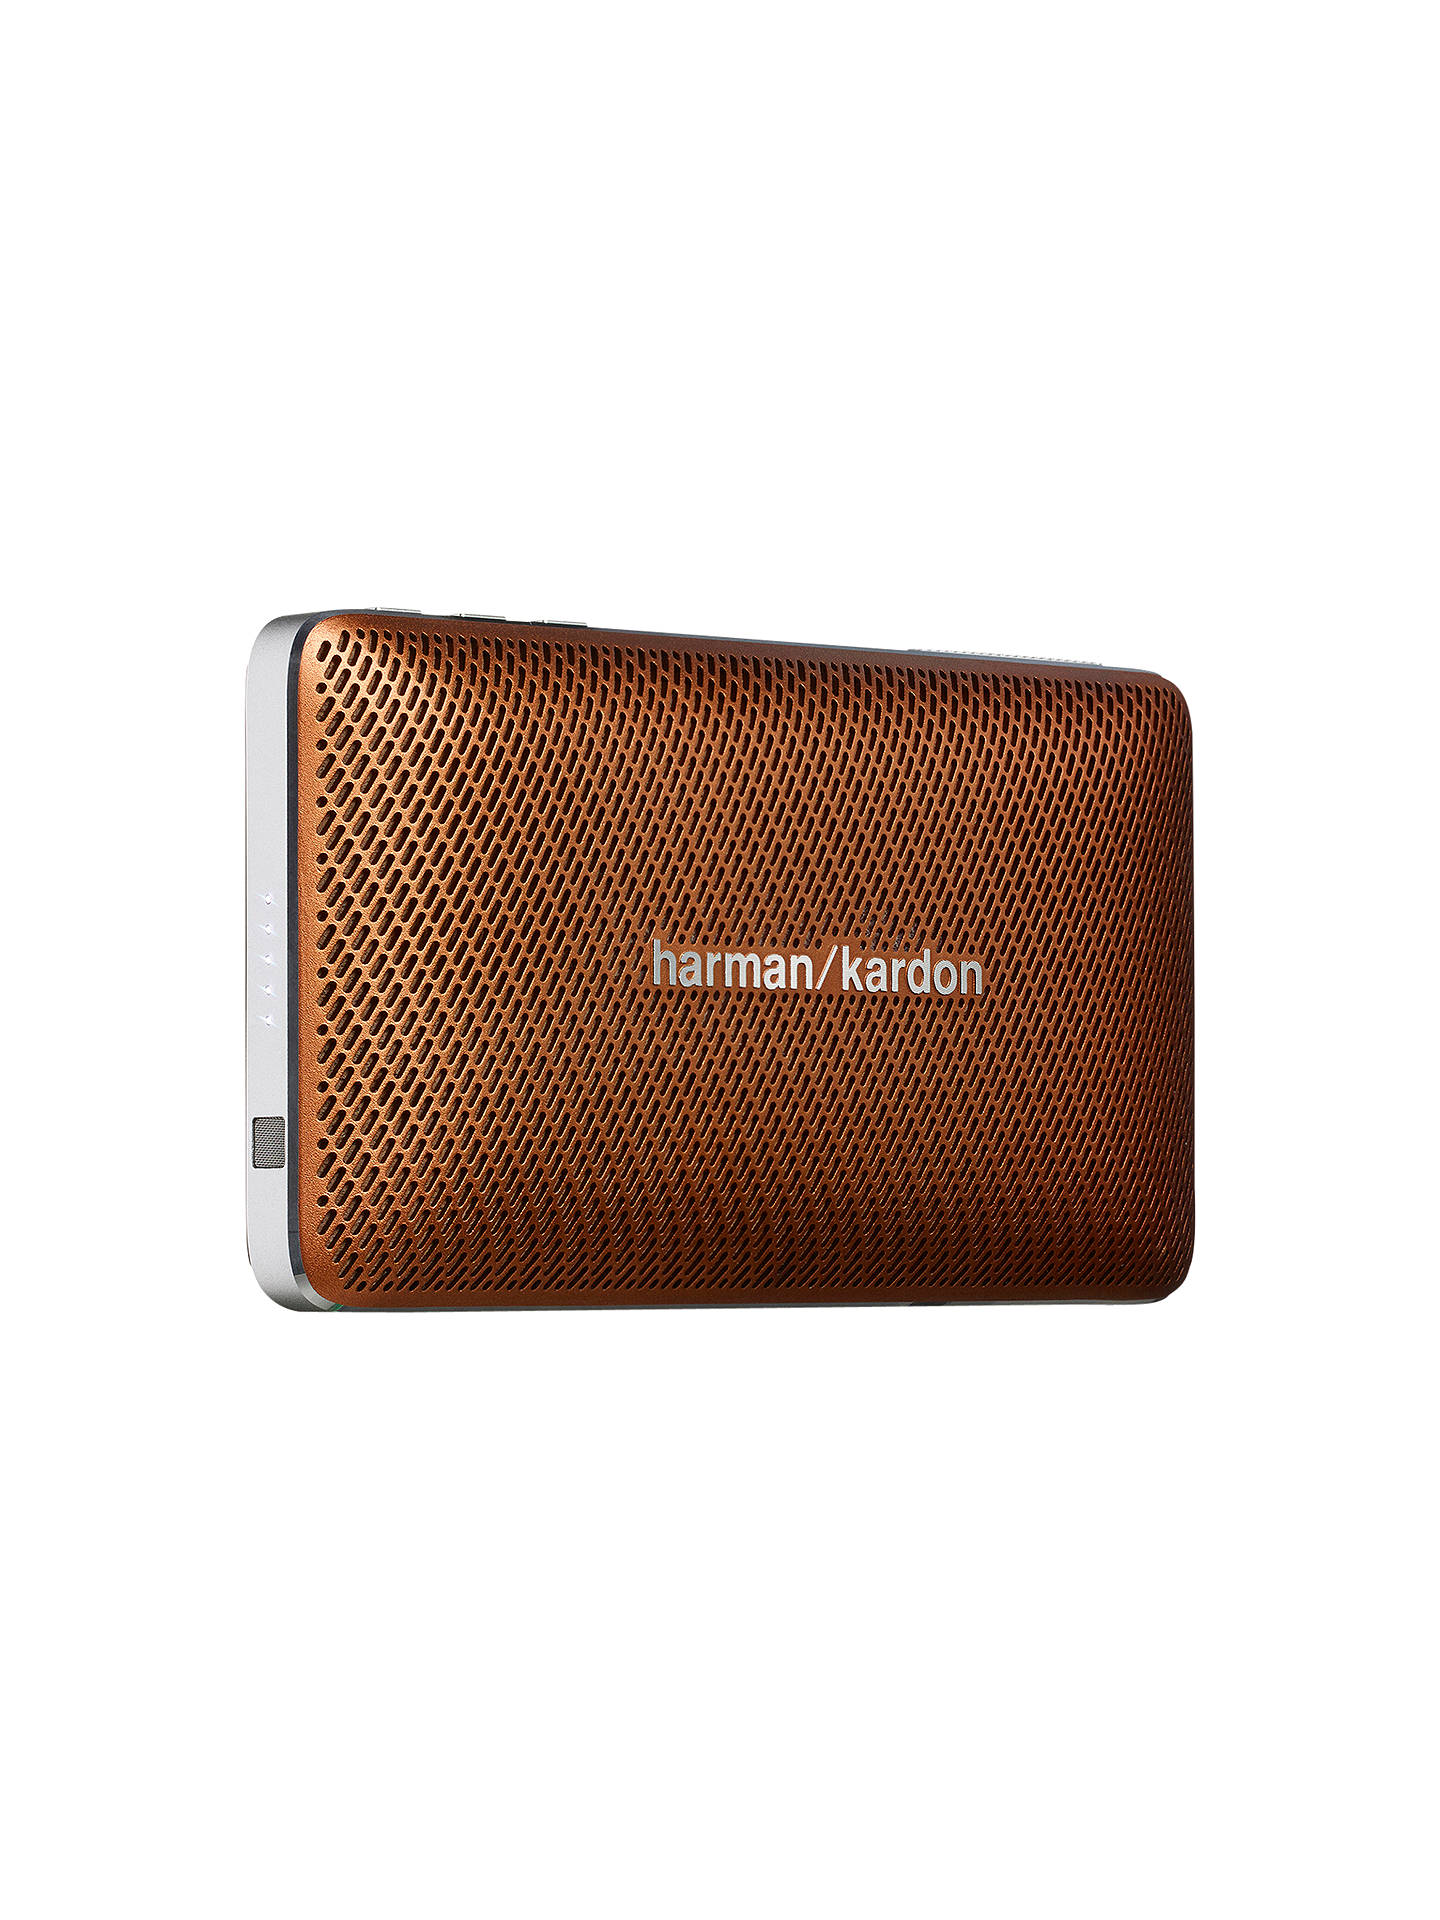 harman kardon esquire mini portable bluetooth speaker. Black Bedroom Furniture Sets. Home Design Ideas